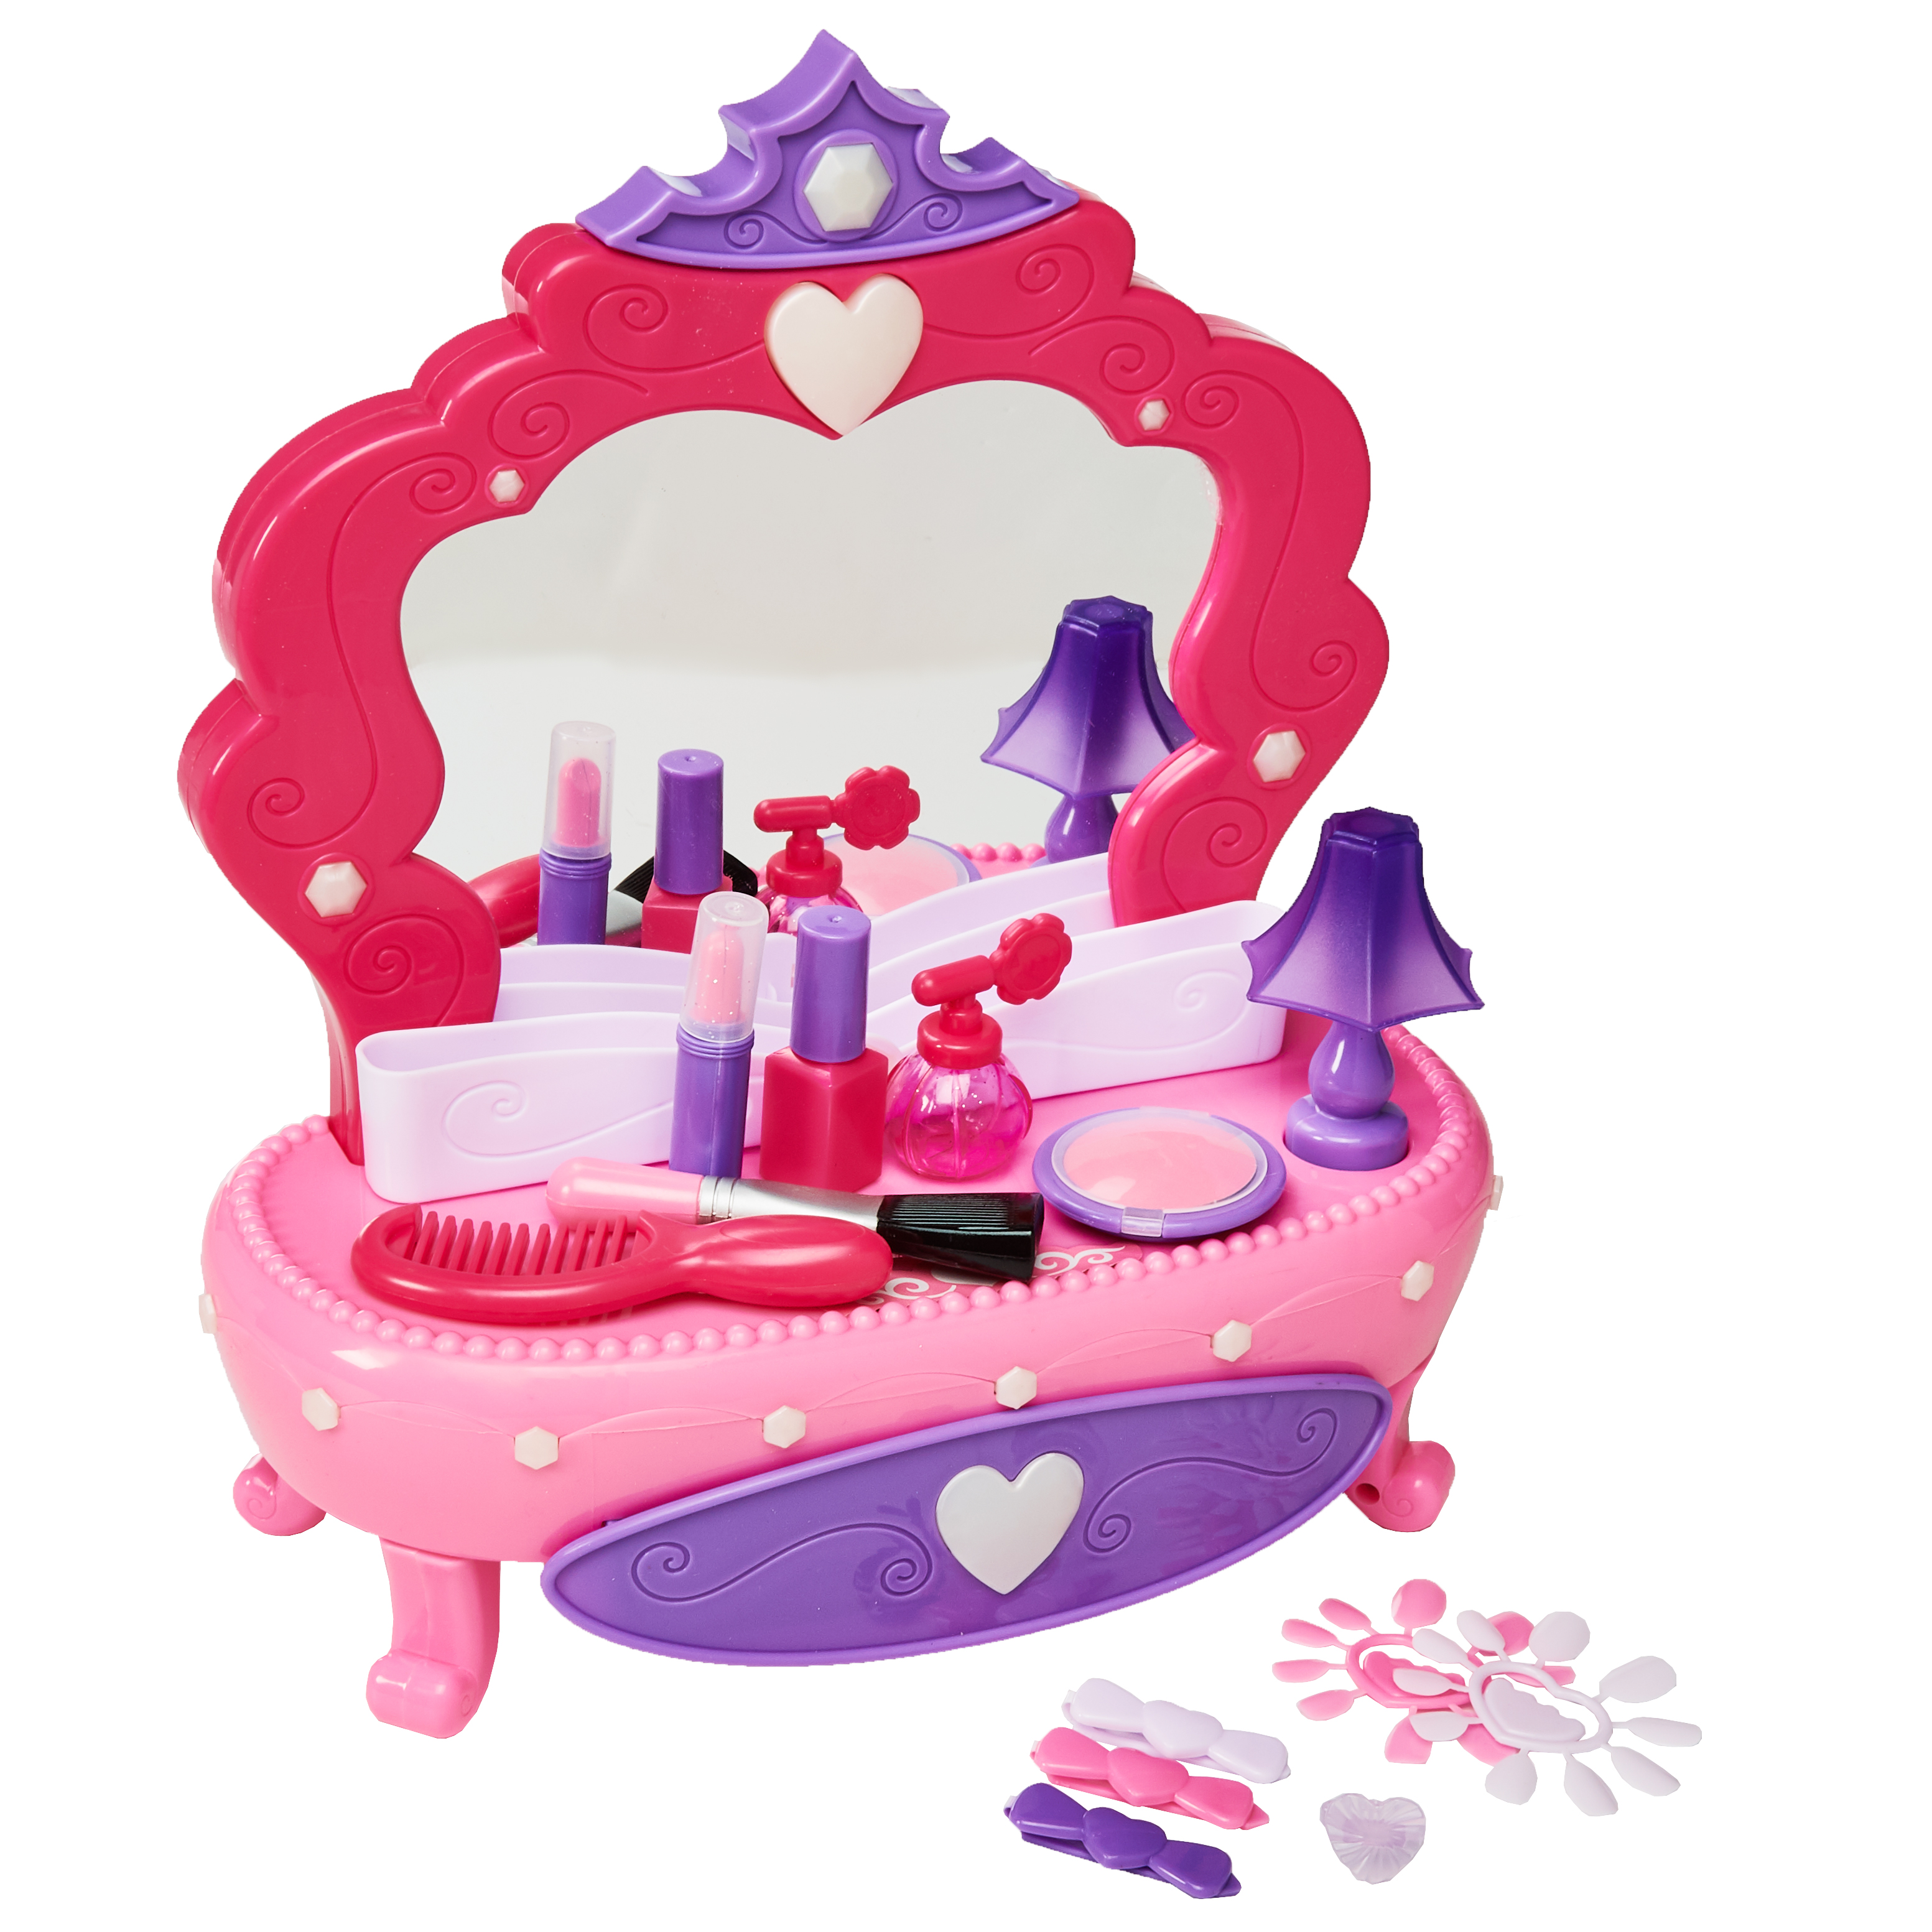 Kid Connection Vanity Set, 13 Pieces